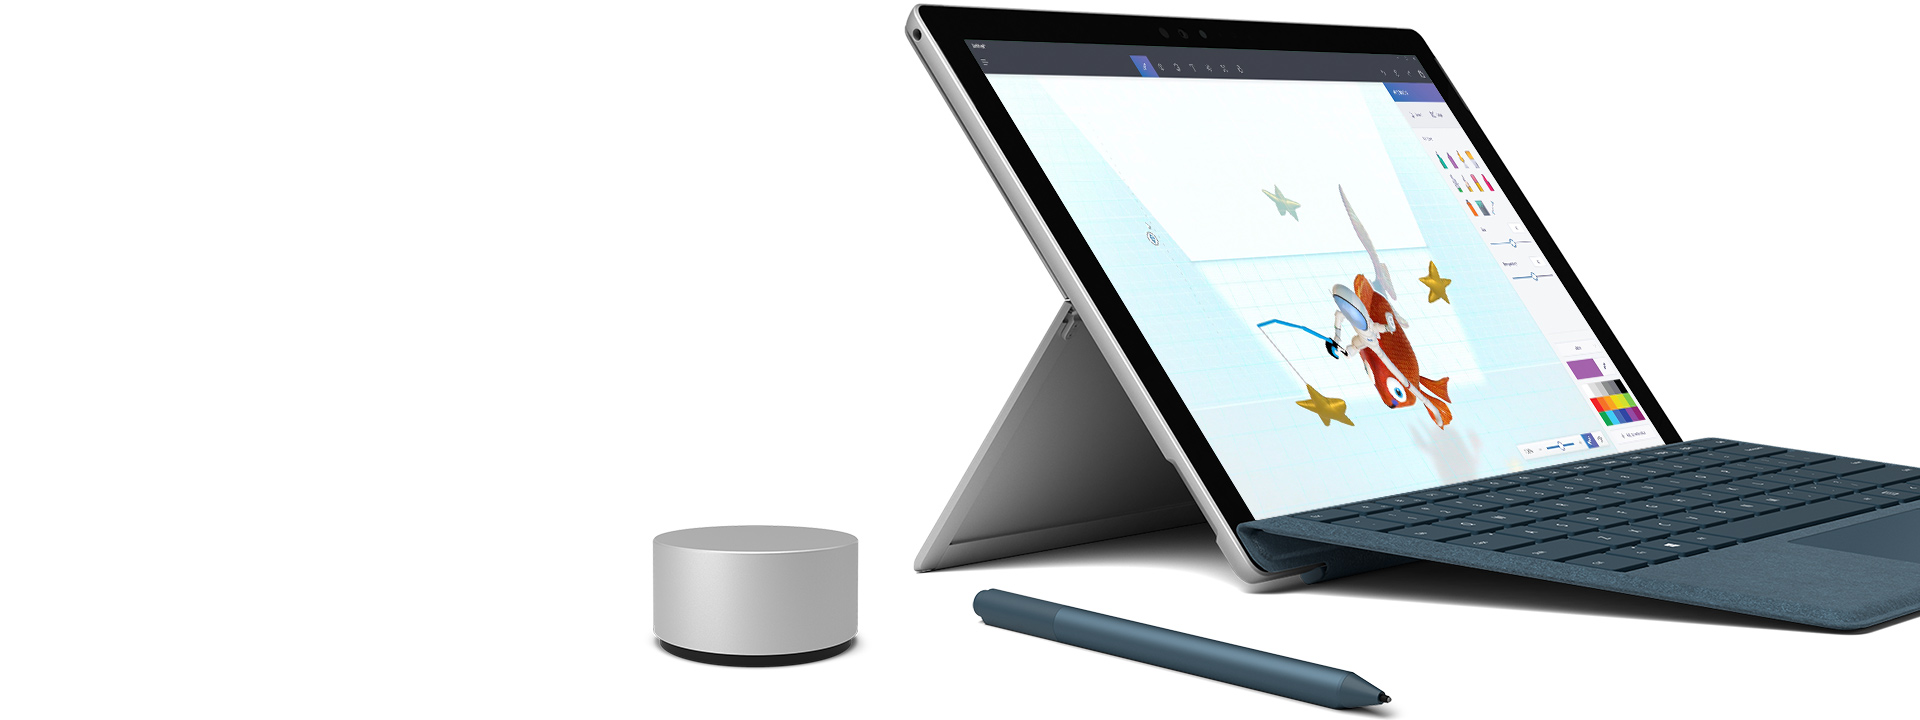 Surface Pro i bærbar PC-modus med Surface Dial, penn og Type Cover.